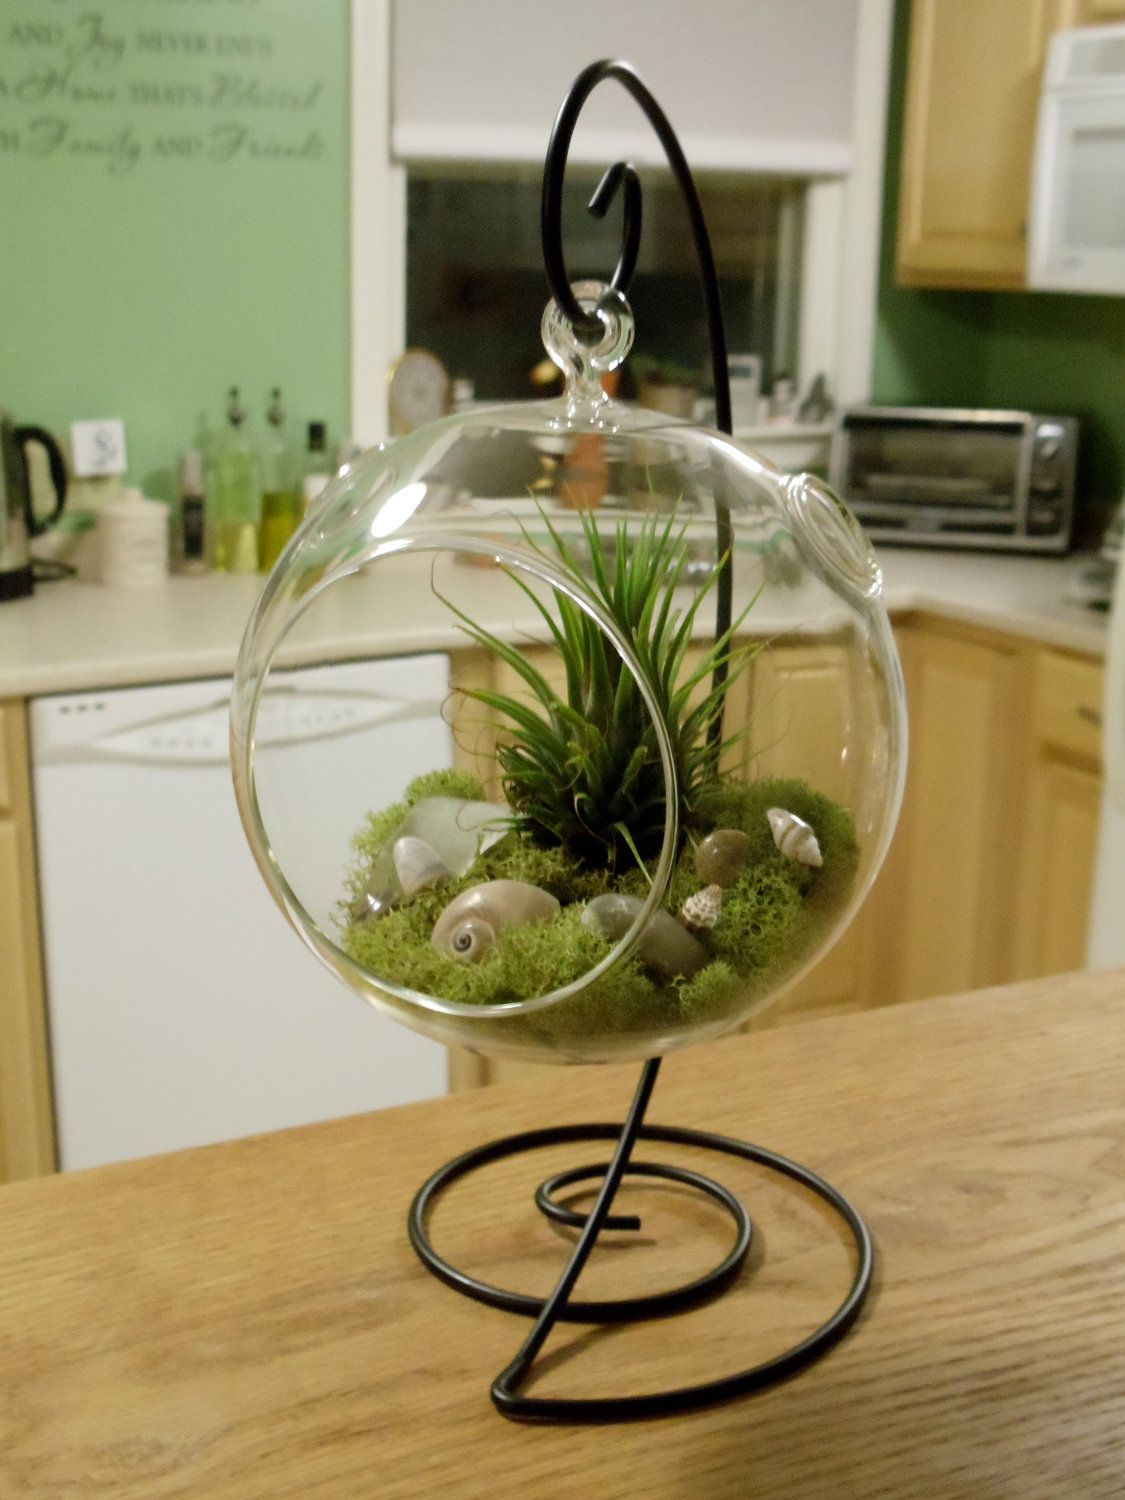 Diy Terrarium Stand Air Plants Air Plant Terrarium With Decorative Stand By